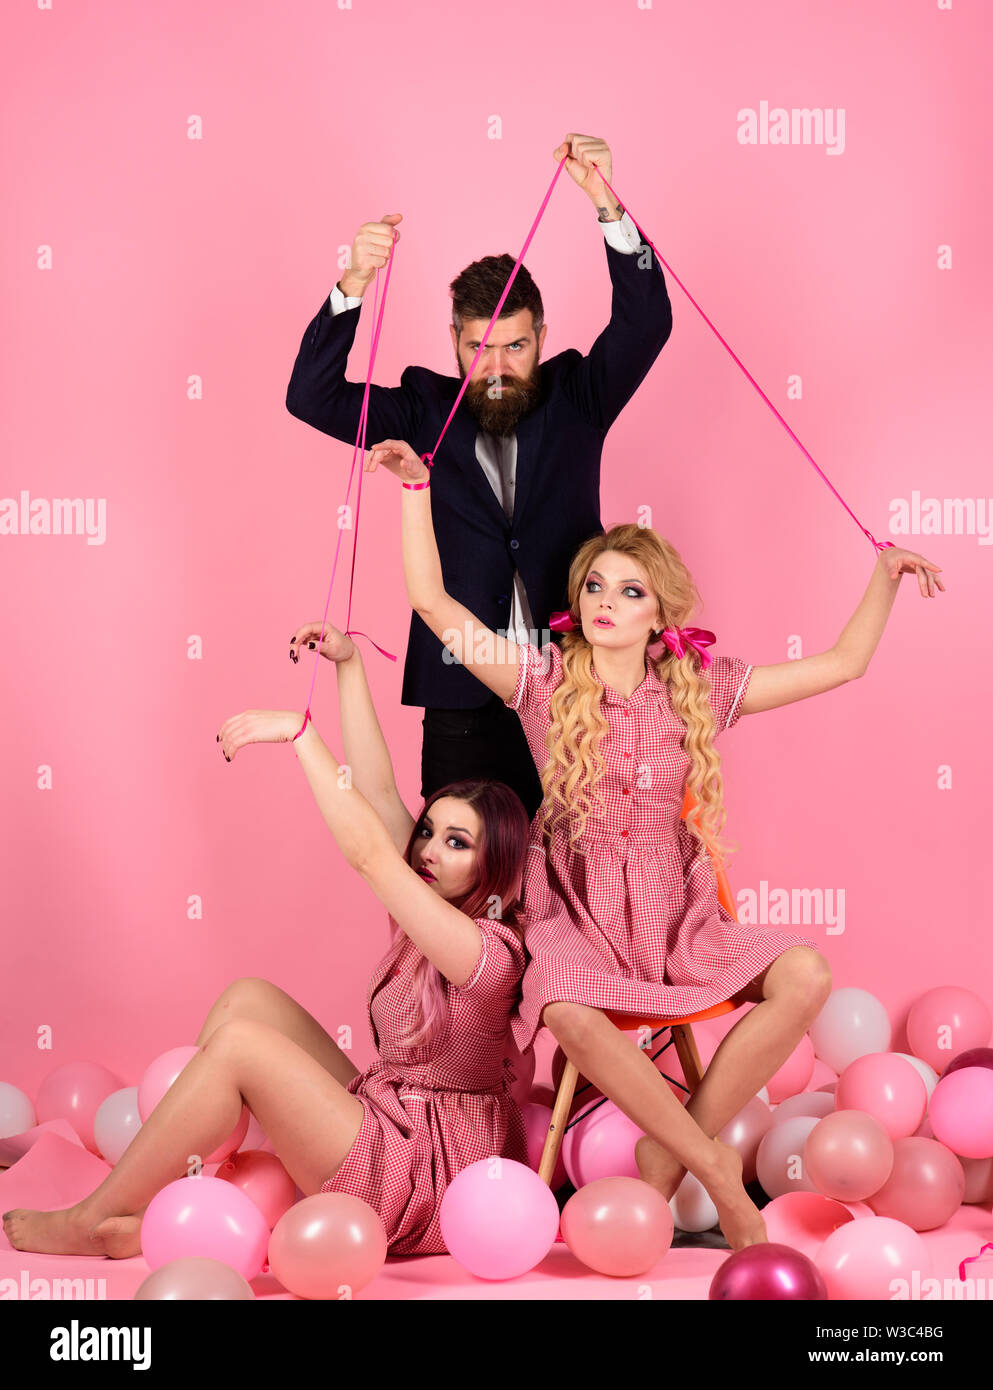 Creative idea. Love triangle. vintage fashion women puppet and man. retro girls and master in party balloons. Crazy girls and man on pink. Halloween. - Stock Image